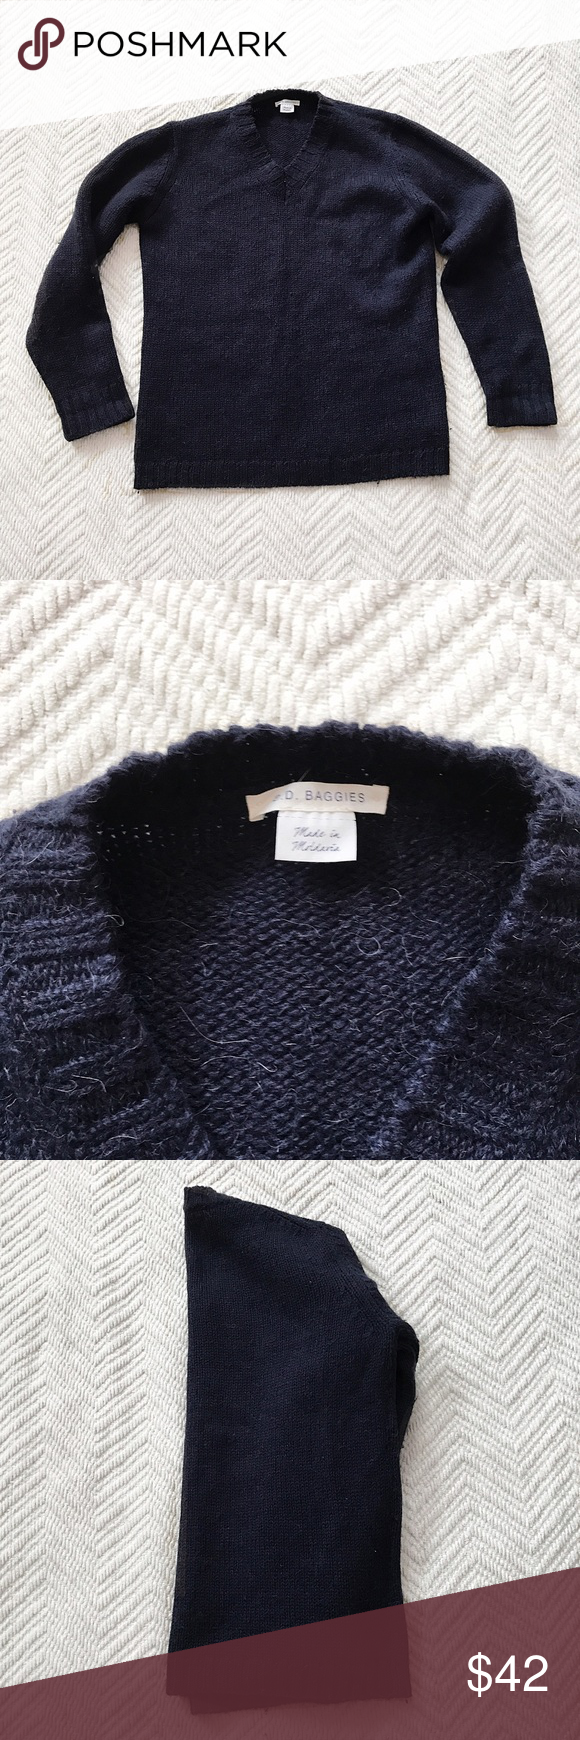 BD Baggies | Navy V-Neck Sweater BD Baggies navy v neck sweater. Warm weight that is perfect for winter in size large. In used but good condition. Offers are welcome and don't forget to bundle for 20% off, Happy Poshing! BD Baggies Sweaters V-Neck